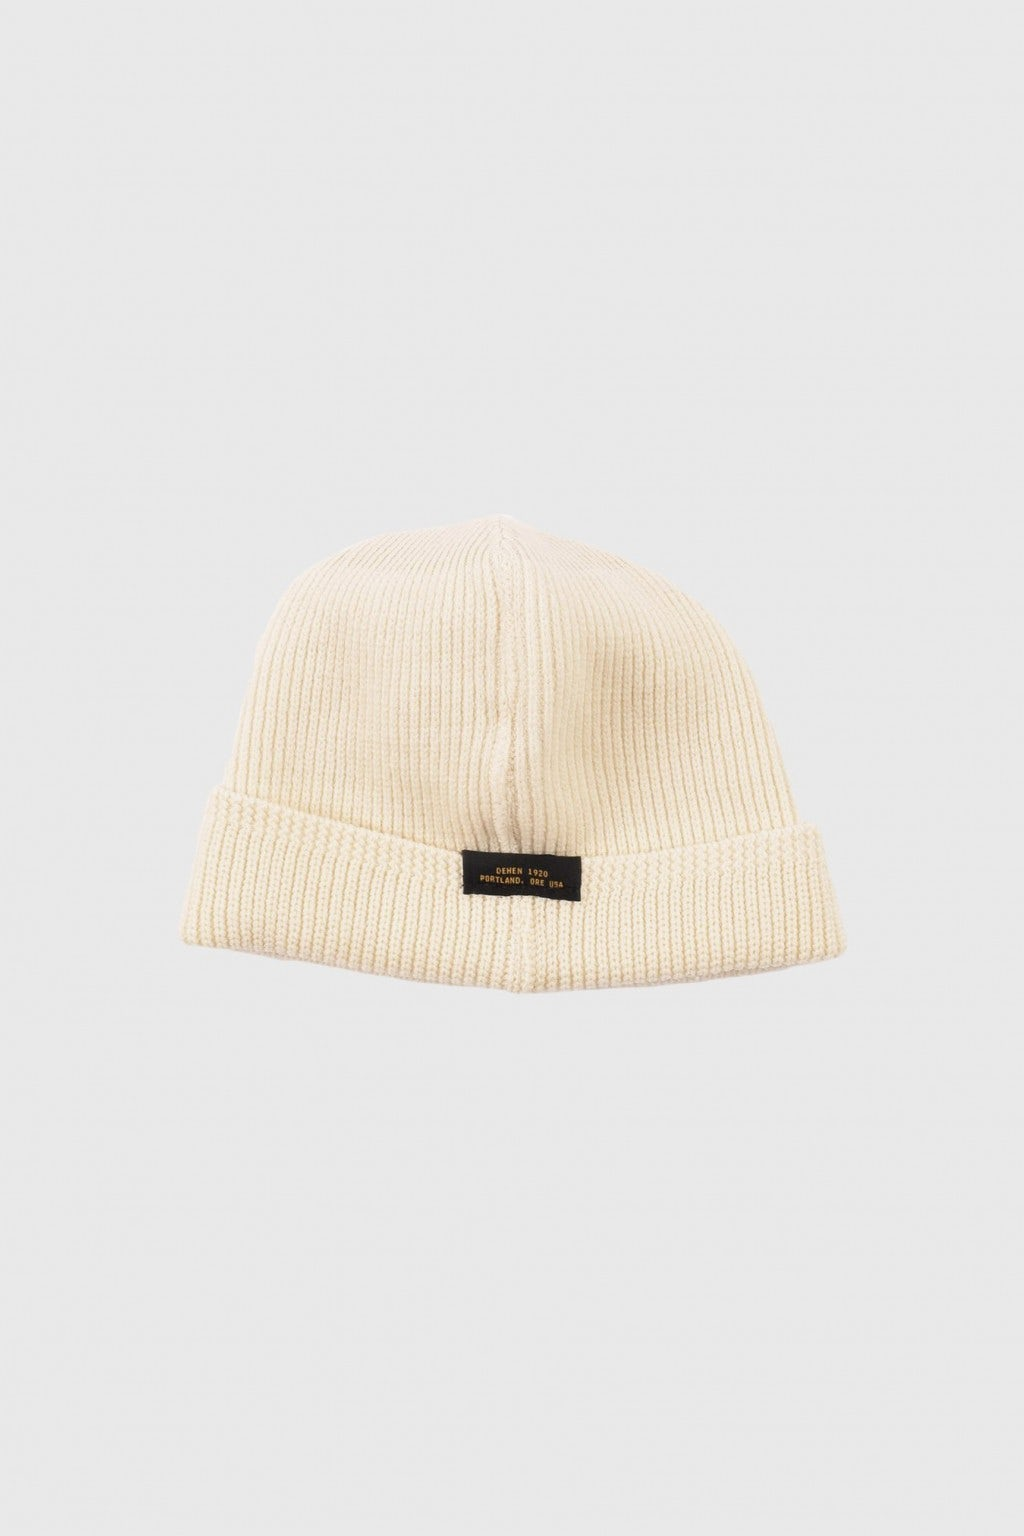 Dehen 1920 Wool Knit Watch Cap Natural